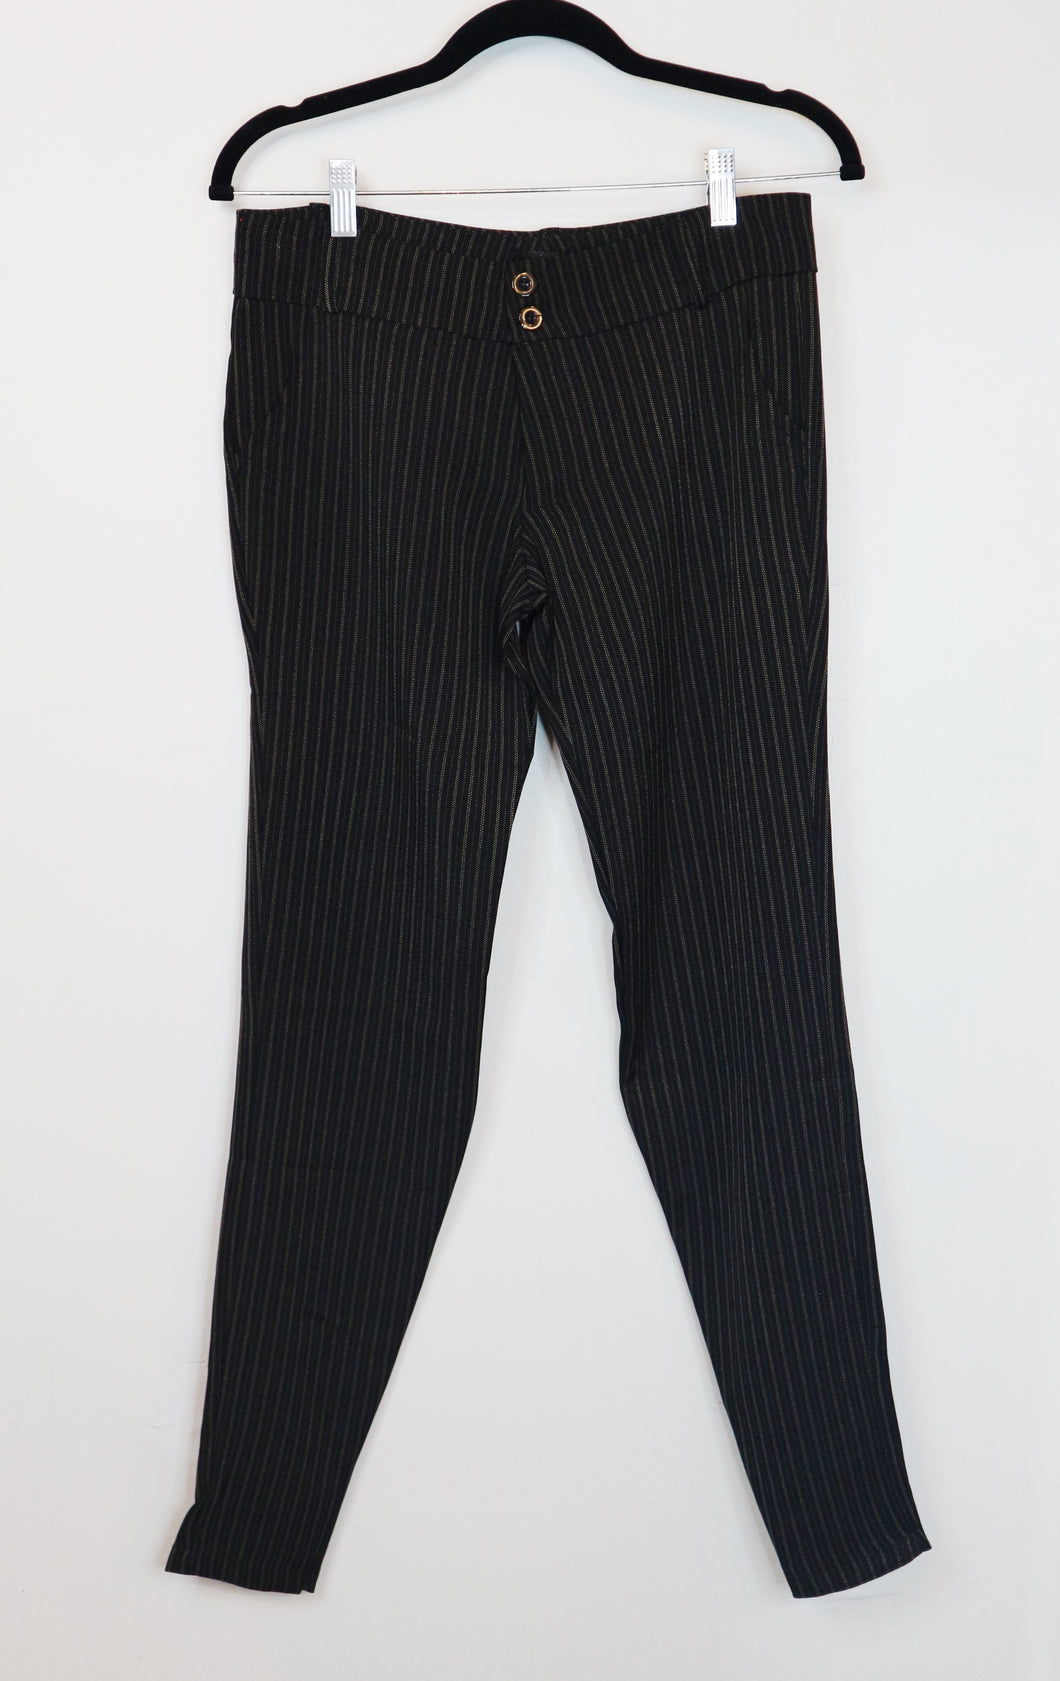 Pierre Marie Black Trousers with Stripes